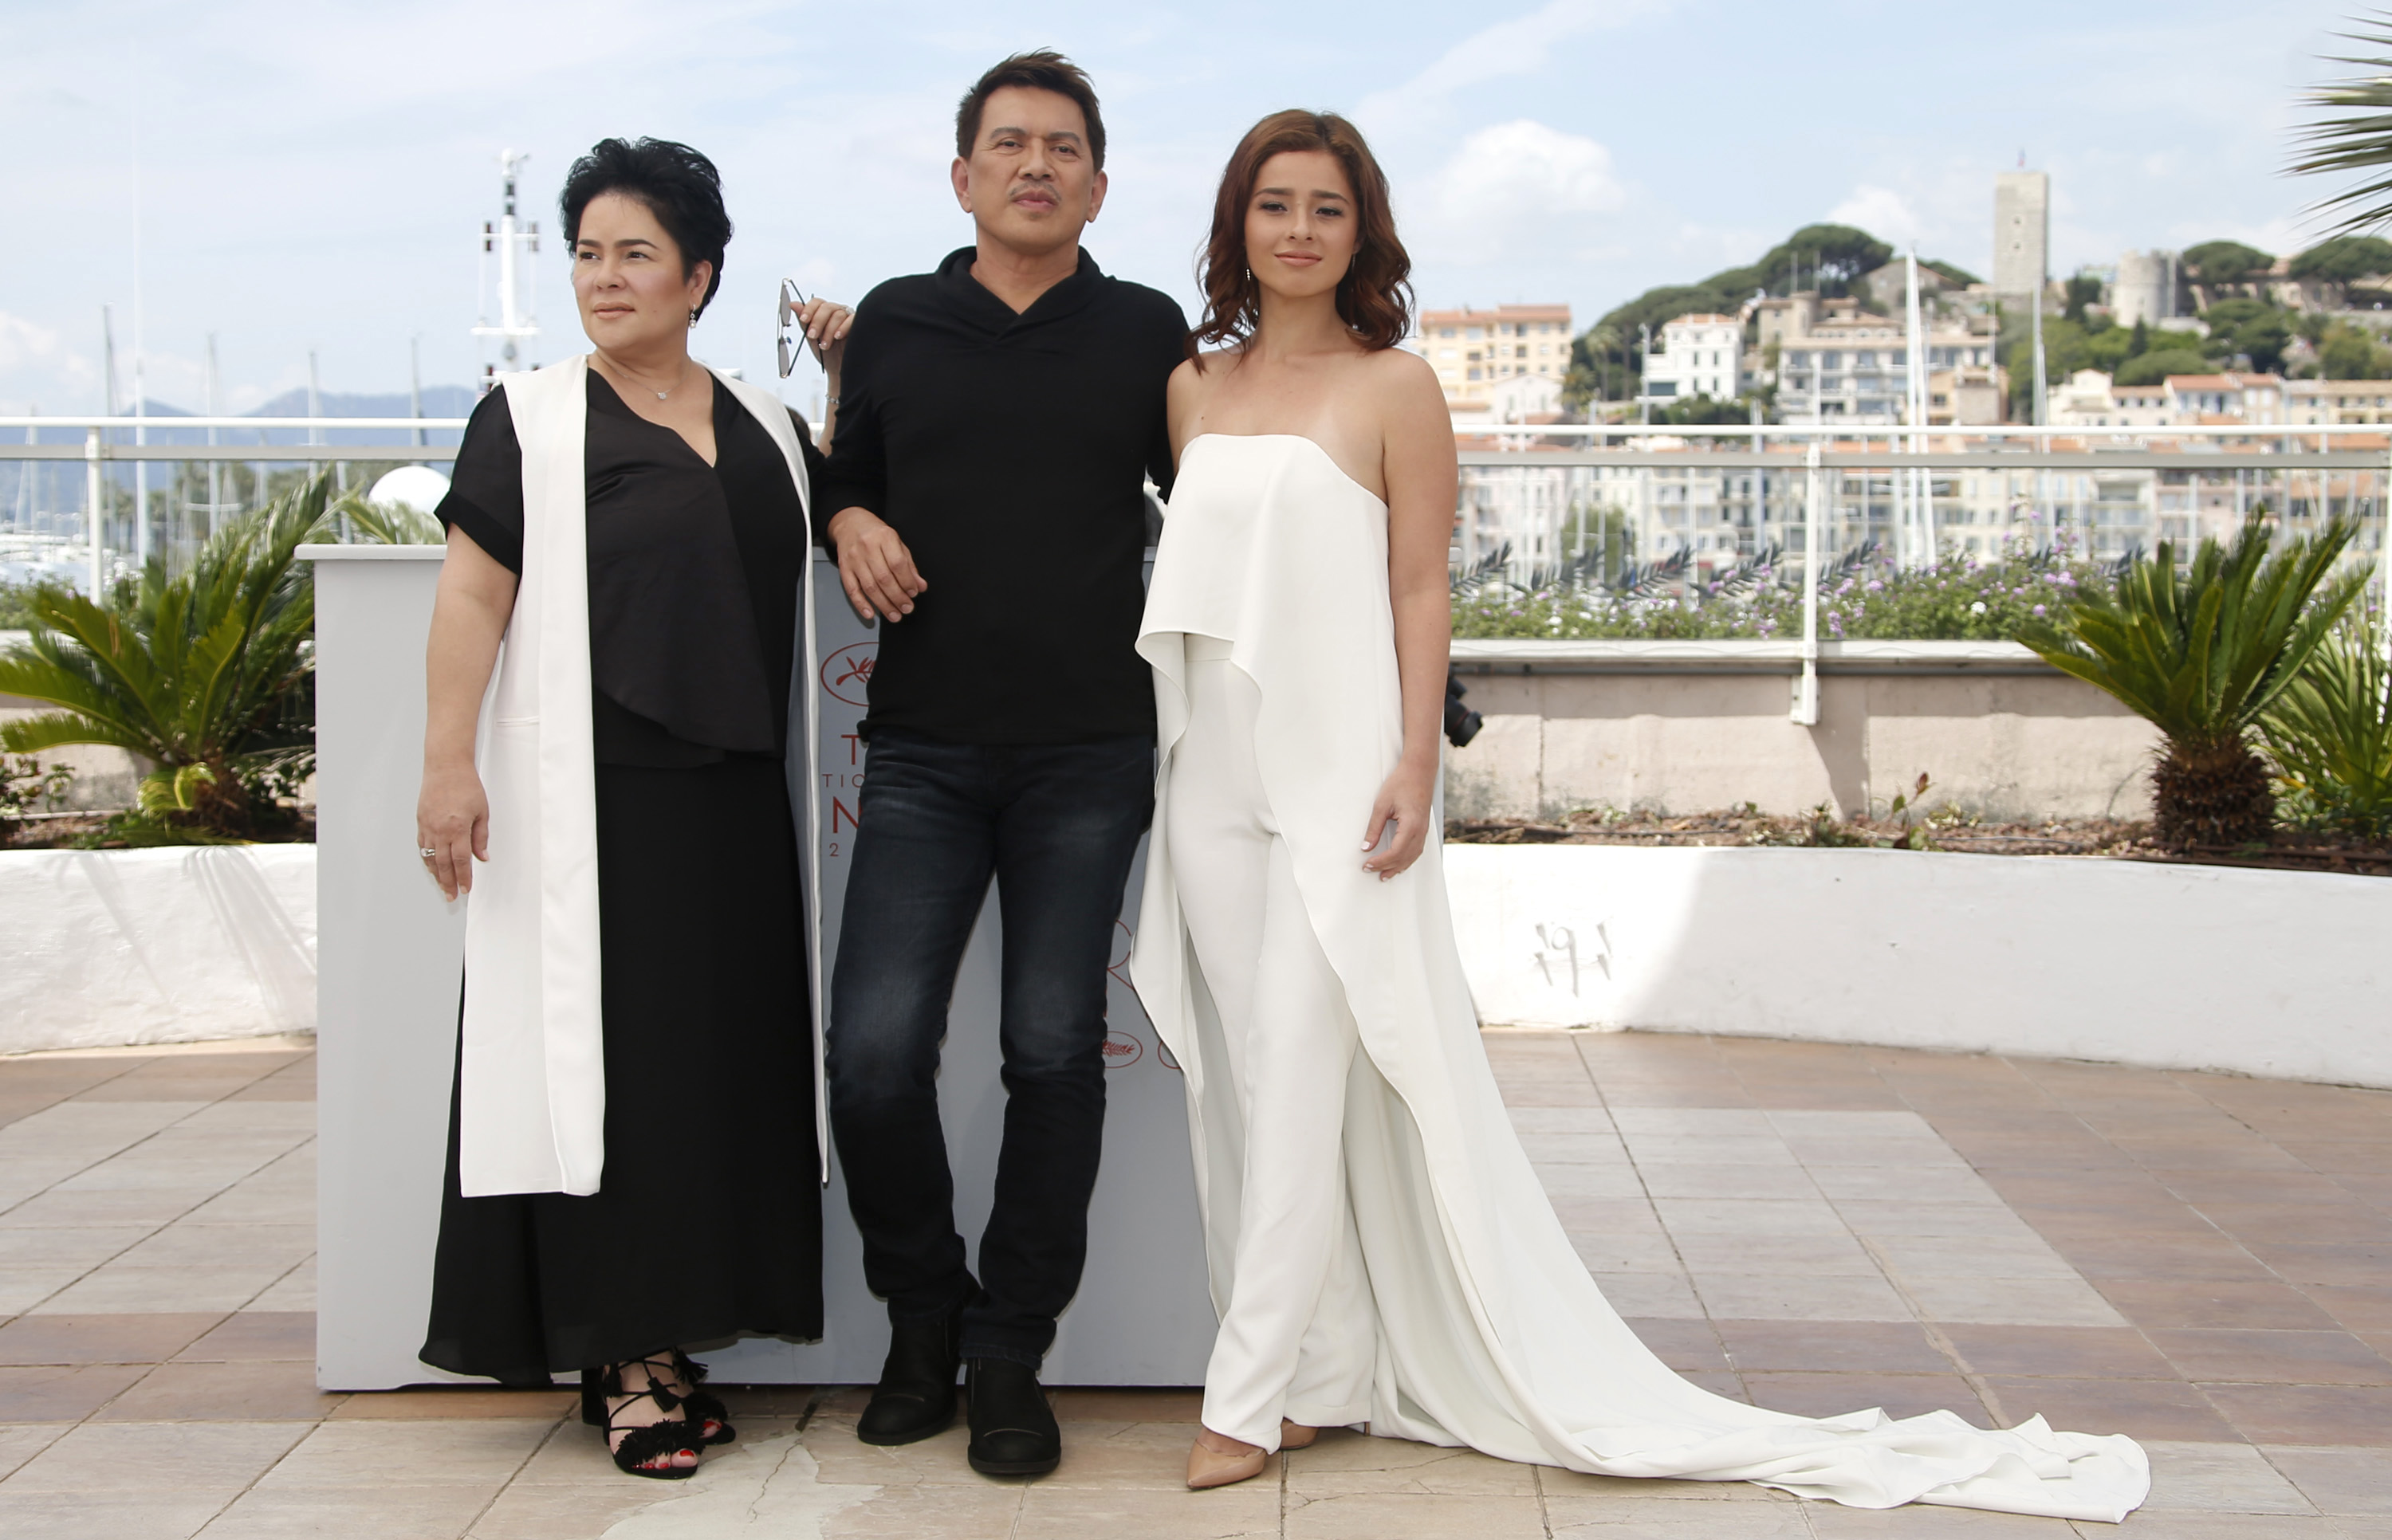 Andi Eigenmann, director Brillante Mendoza, and actress Jaclyn Jose  pose during the photocall for 'Ma'Rosa' at the 69th annual Cannes Film Festiva on May 18. Photo by Guillaume Horcajuelo/EPA